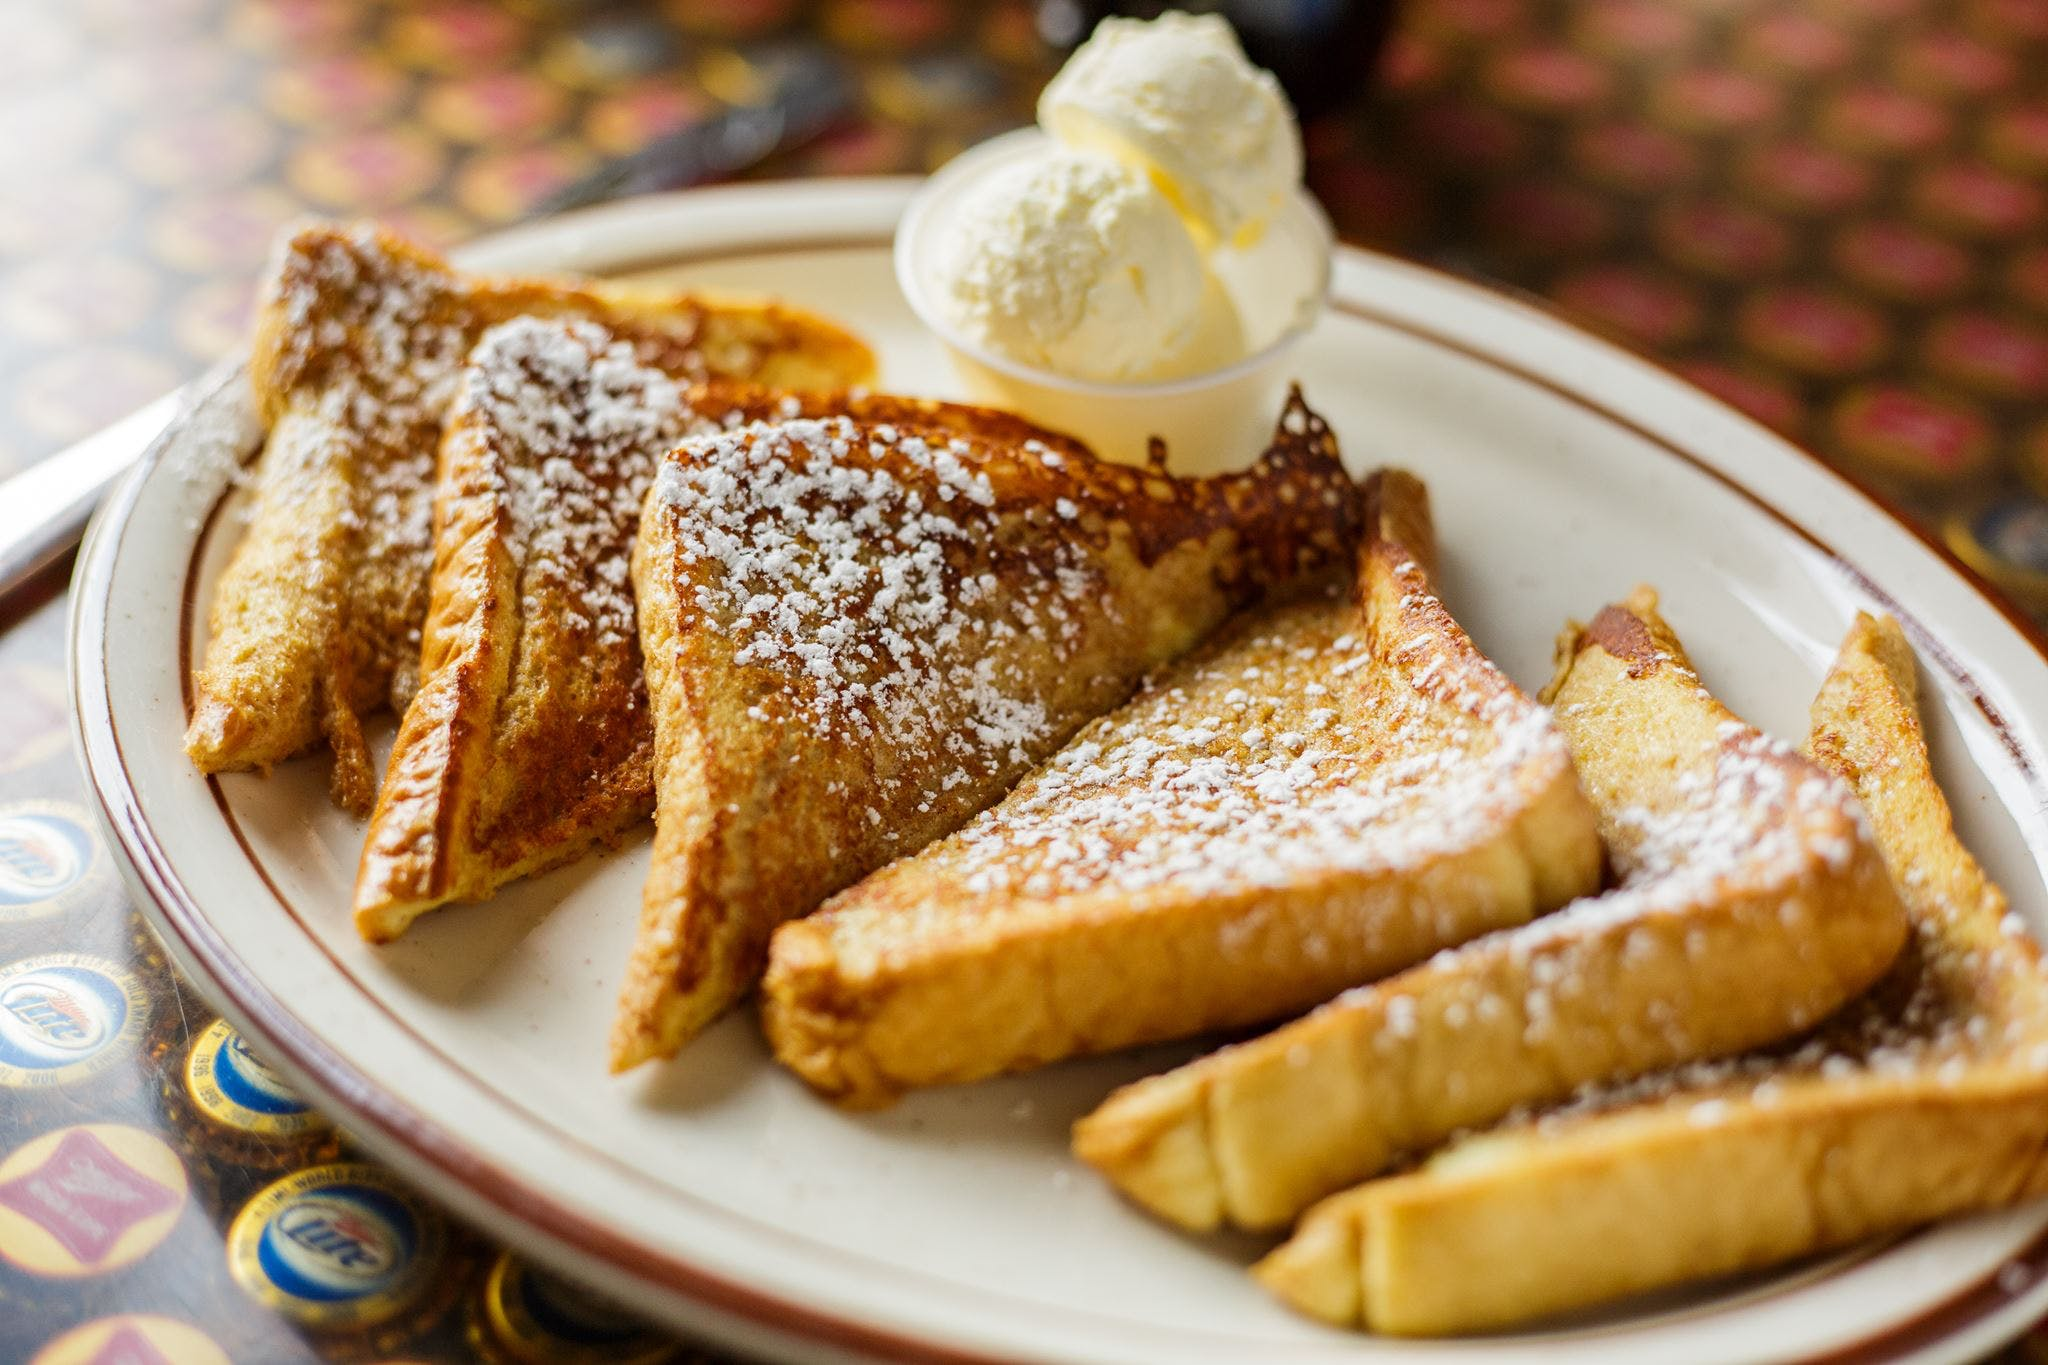 French Toast from Vintage Spirits & Grill in Madison, WI